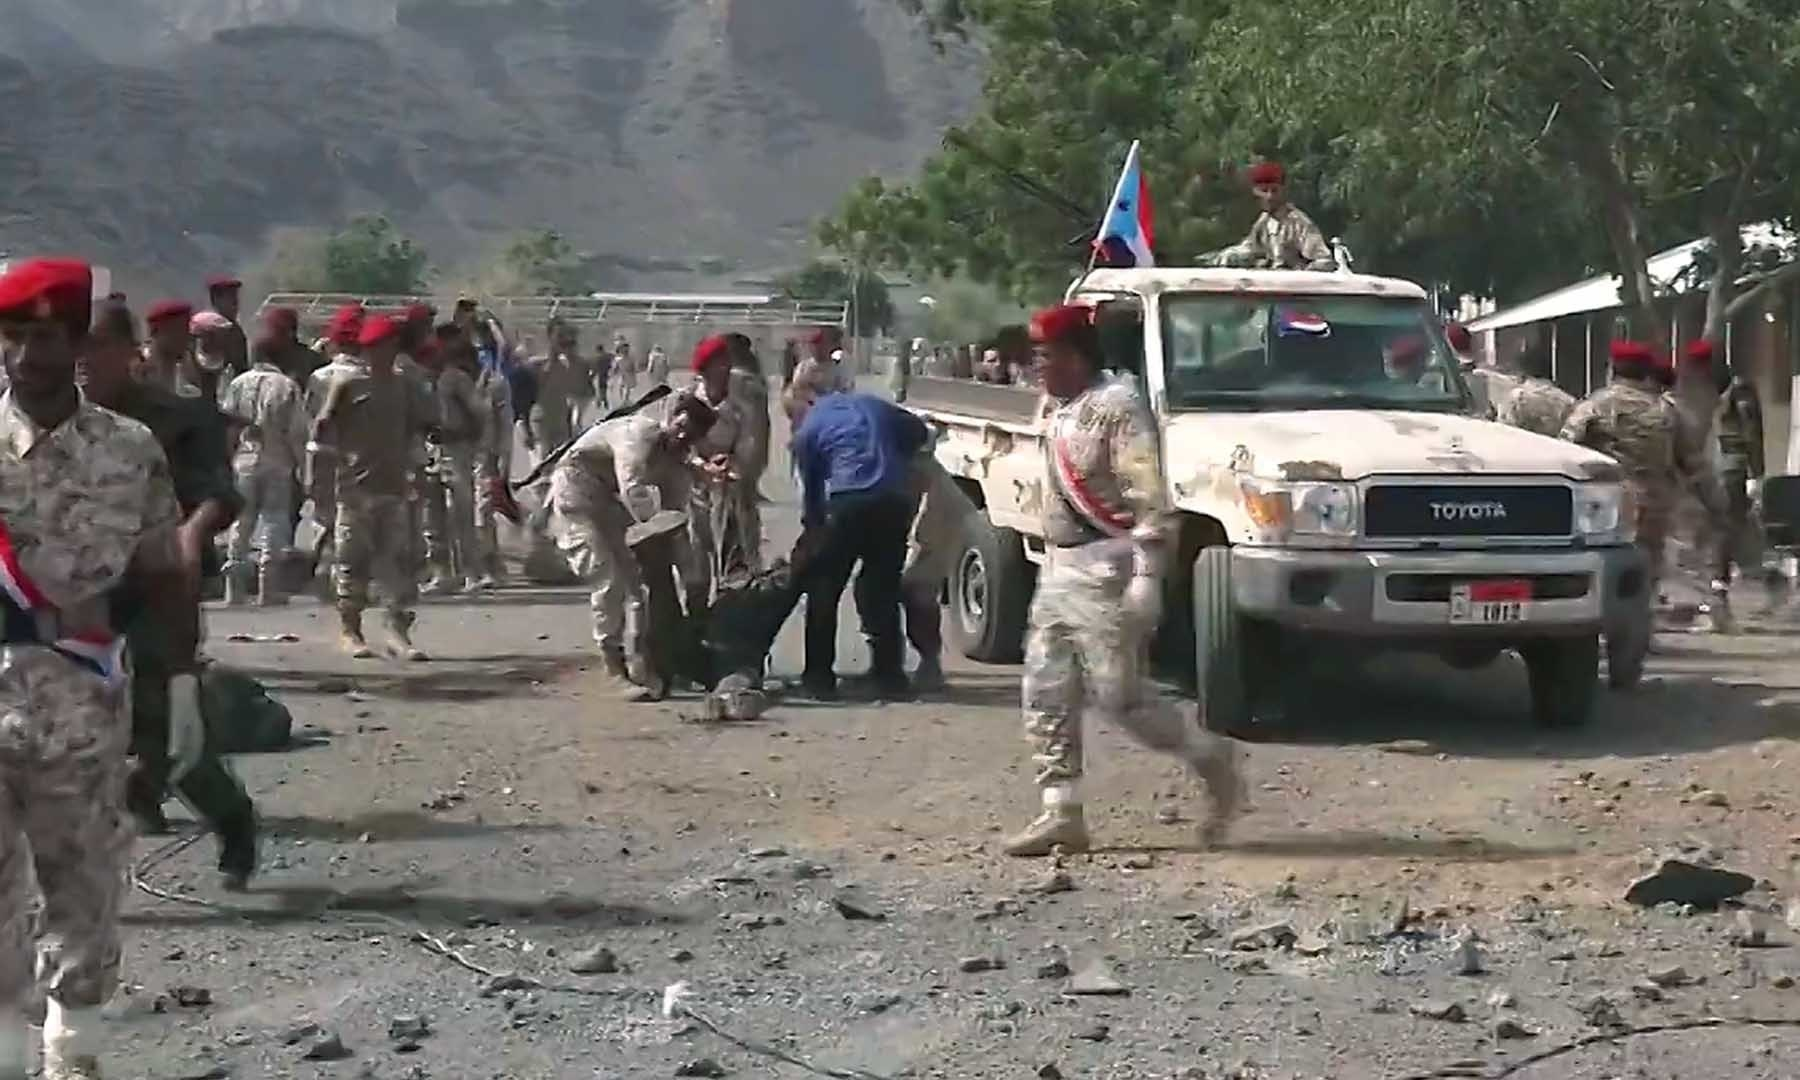 Yemen official says 40 killed in Aden attacks